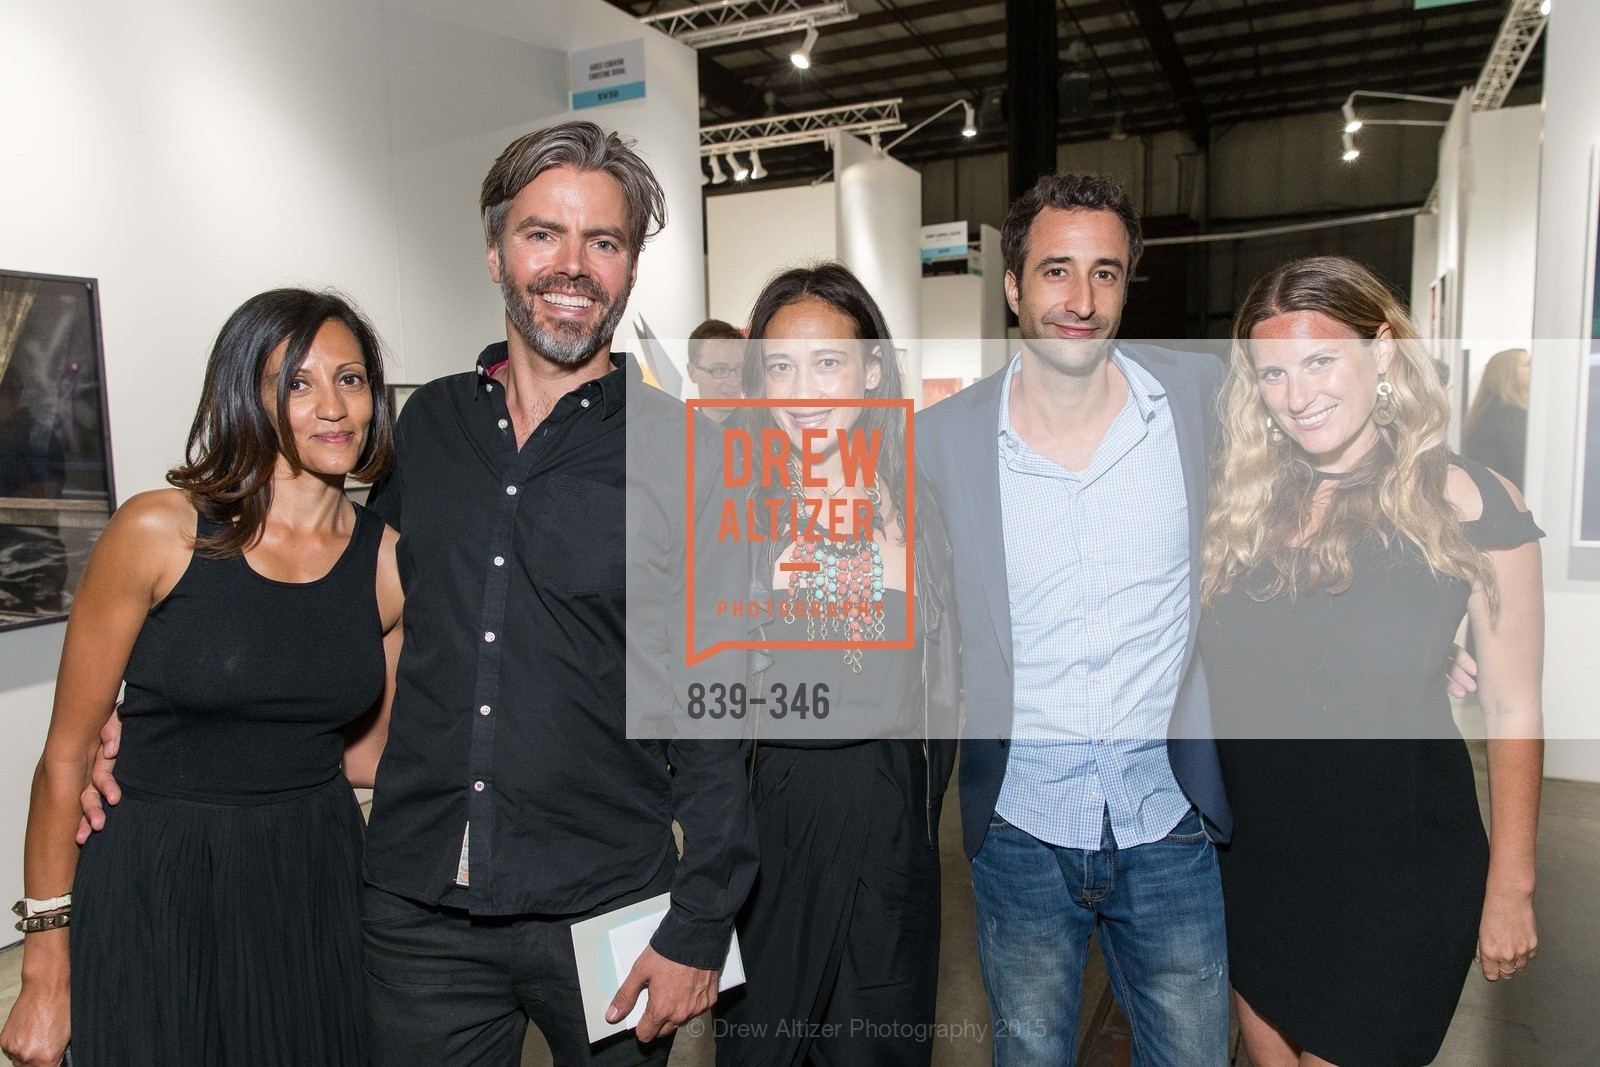 Yael Putterman, Tim Paschke, Marissa Halbrecht, Johnathan Weizman, Lysee Kaye, Art Miami Presents: Art Silicon Valley, San Mateo County Event Center. 1346 Saratoga Dr, October 8th, 2015,Drew Altizer, Drew Altizer Photography, full-service event agency, private events, San Francisco photographer, photographer California